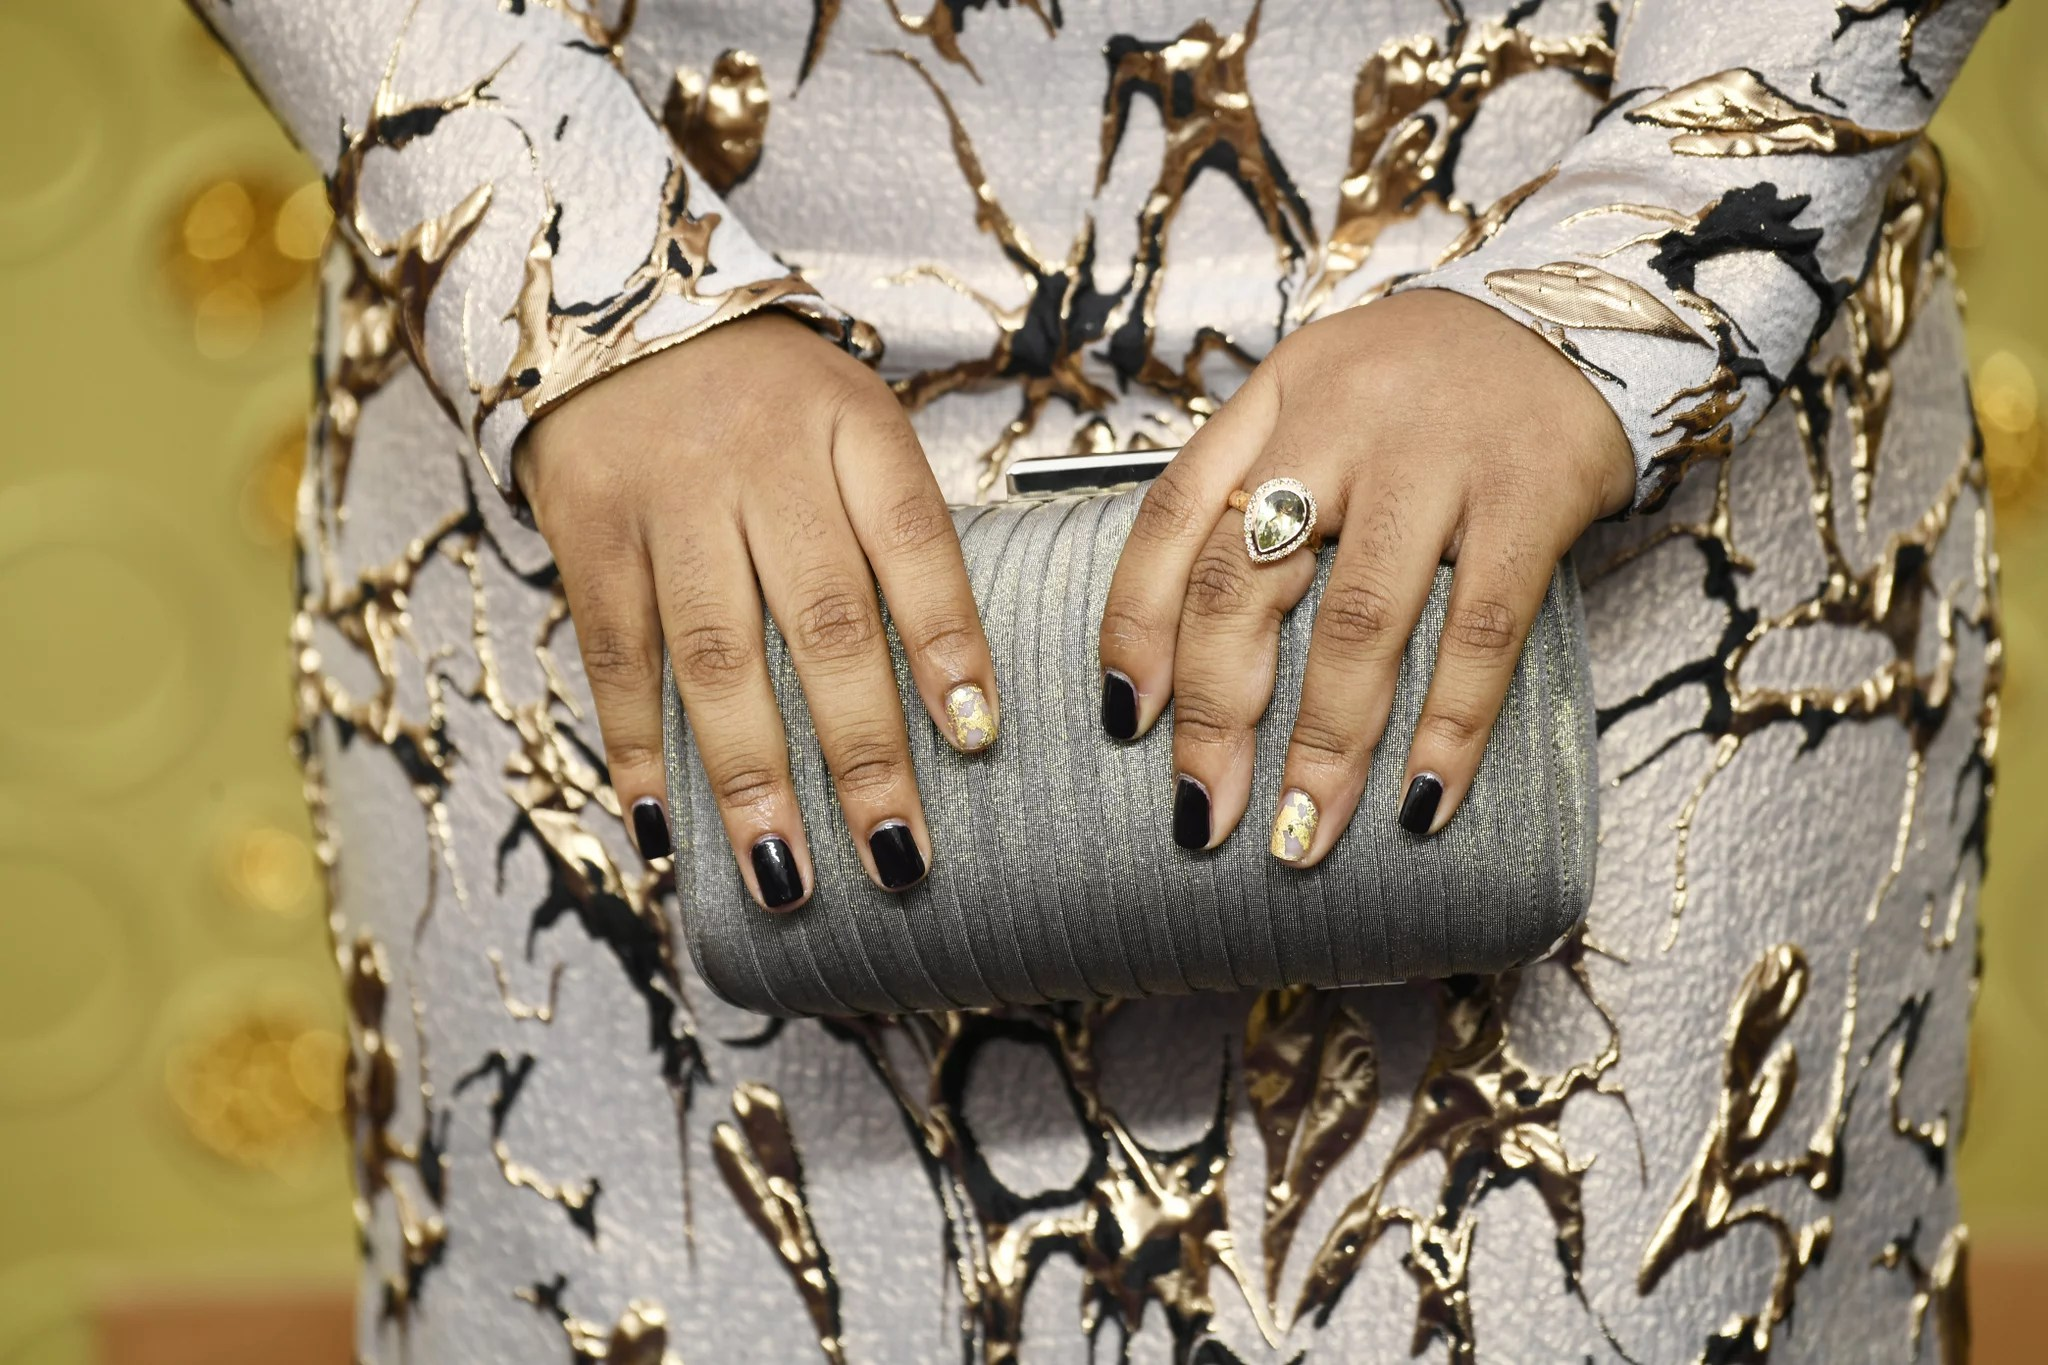 2020 Nail Art Trend Cracked Gold Leaf 20 Of The Coolest Nail